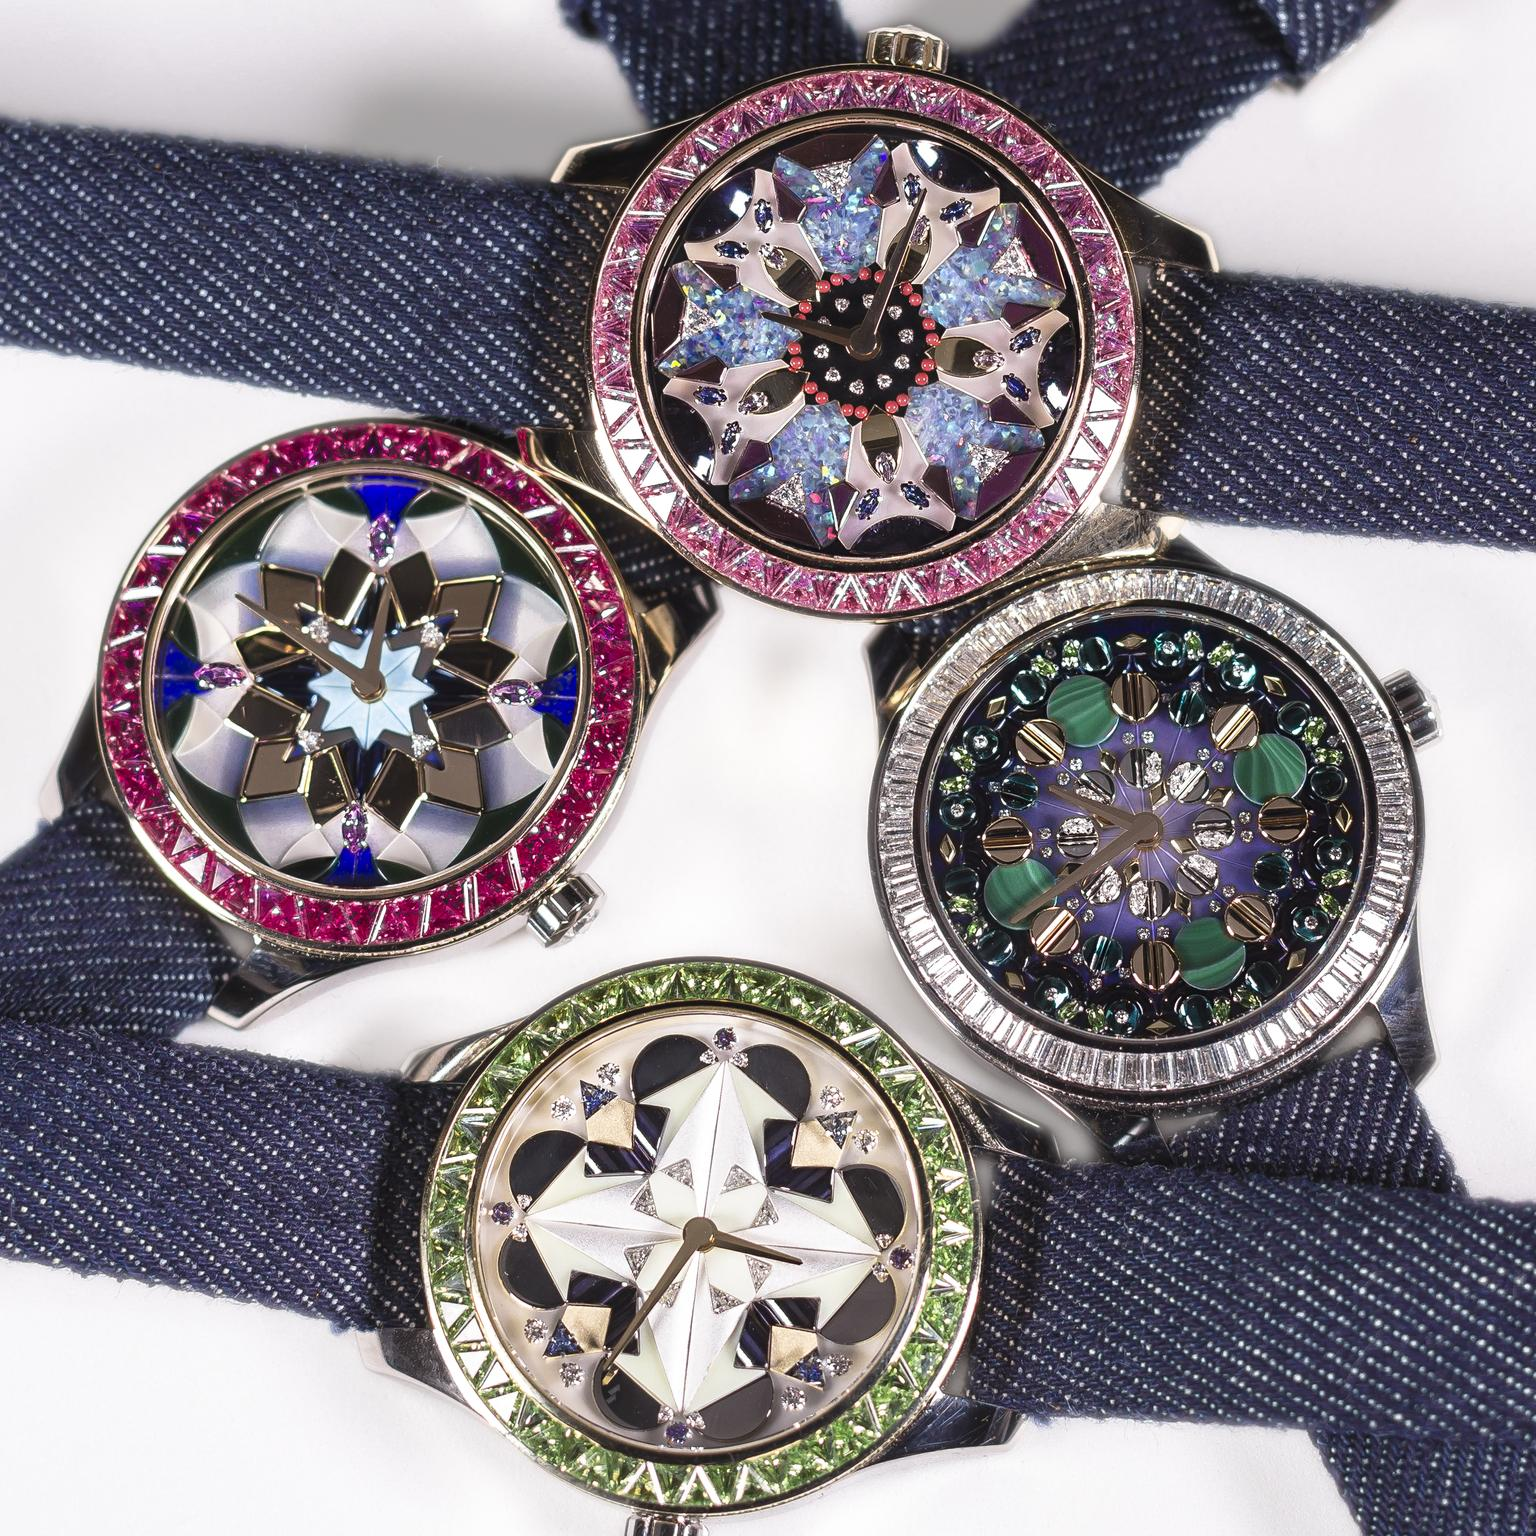 Dior KaleiDiorscope watches